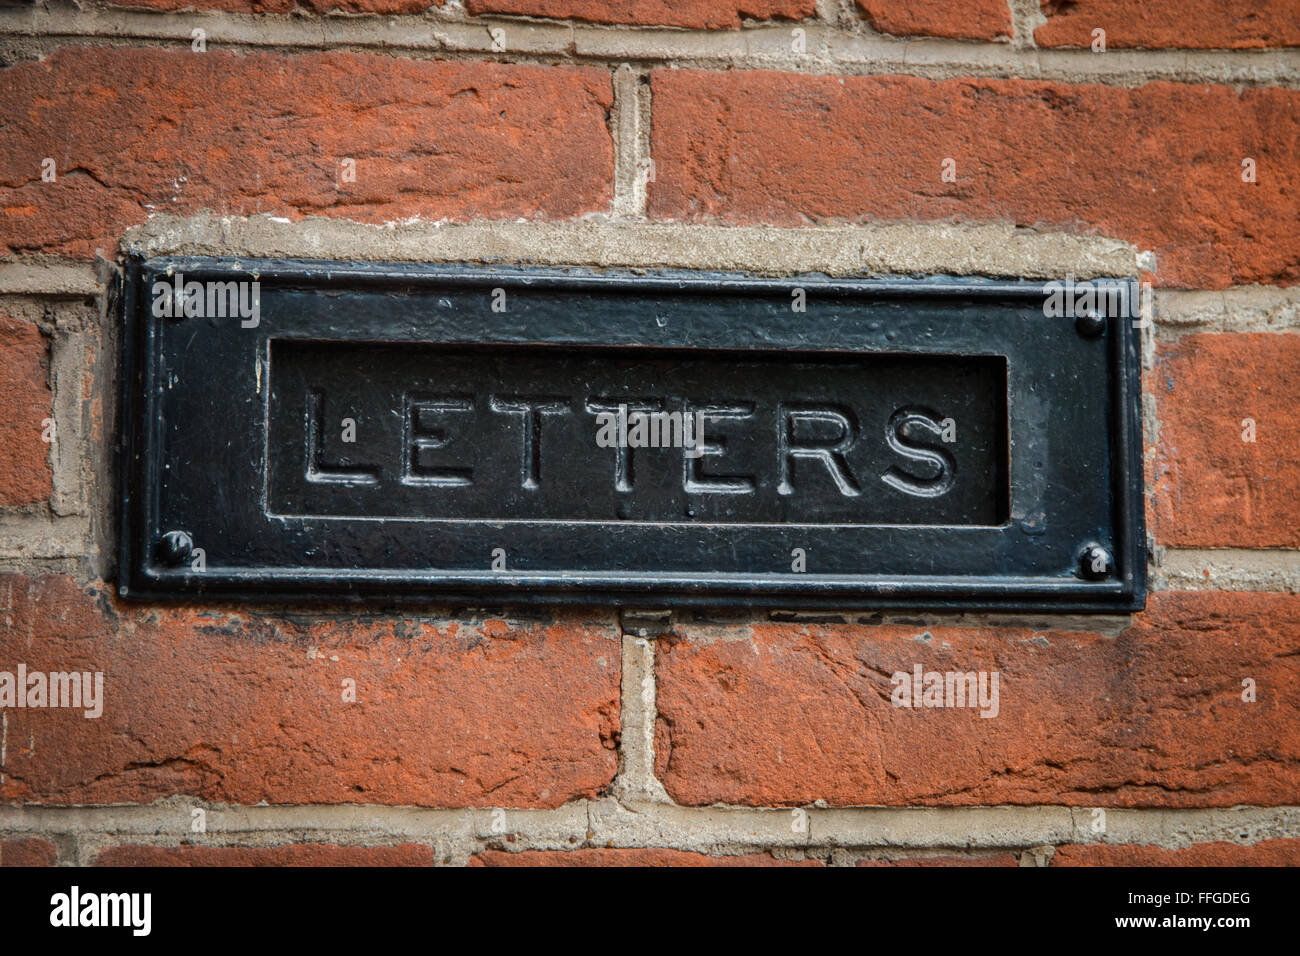 A letter box set in a brick wall engraved with the word 'letters' - Stock Image